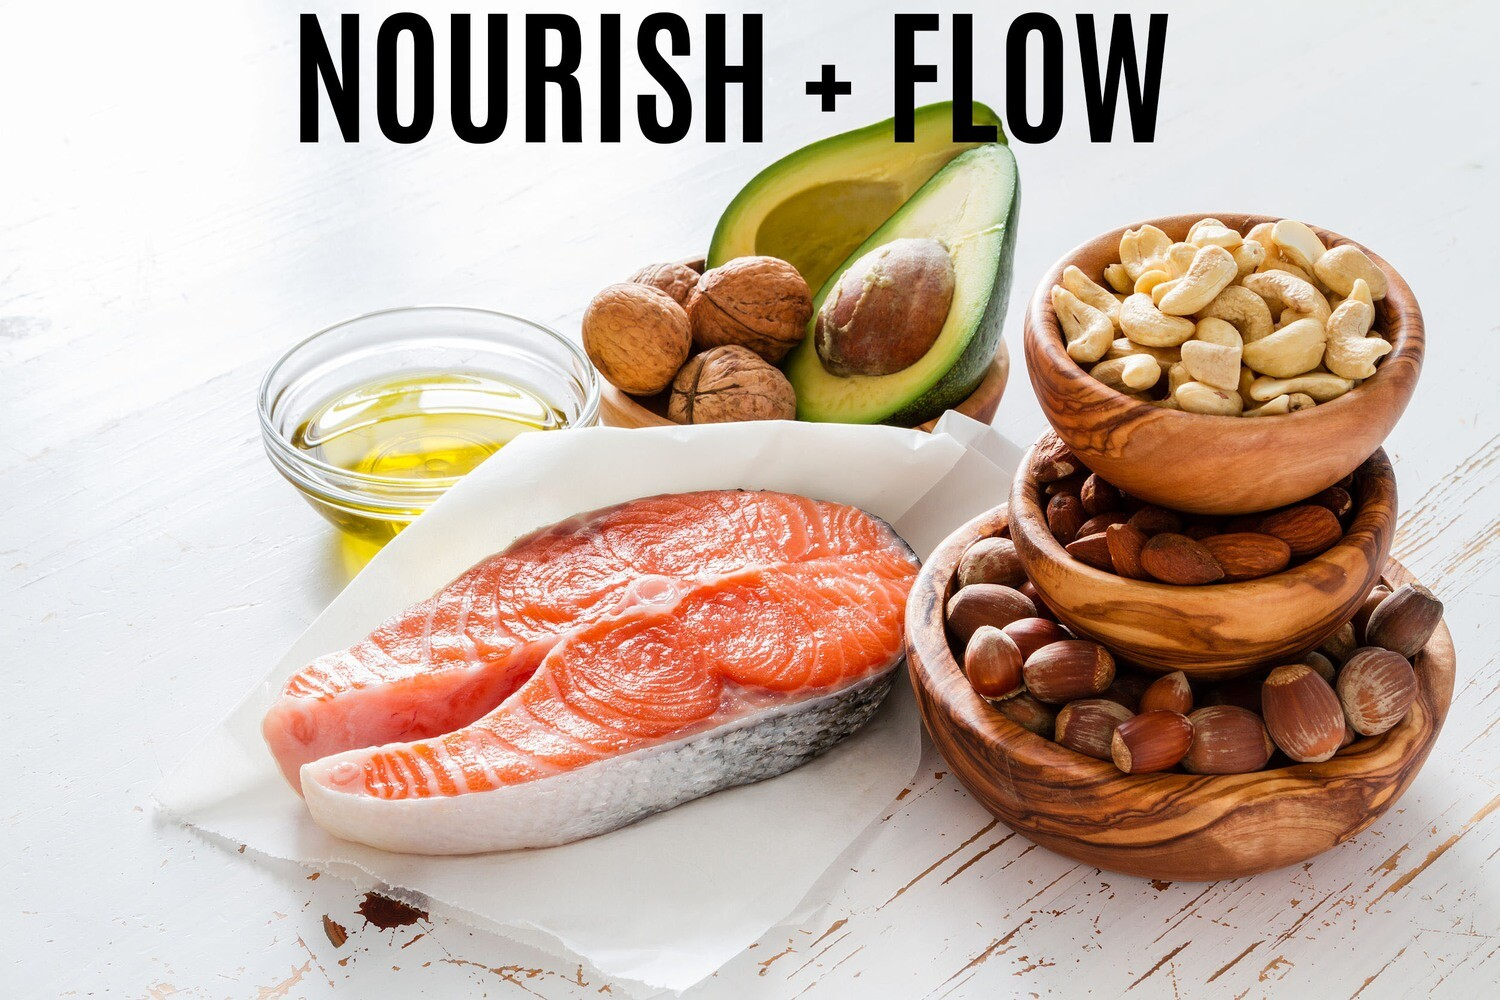 Nourish + Flow Classes - Coming Feb. 2021